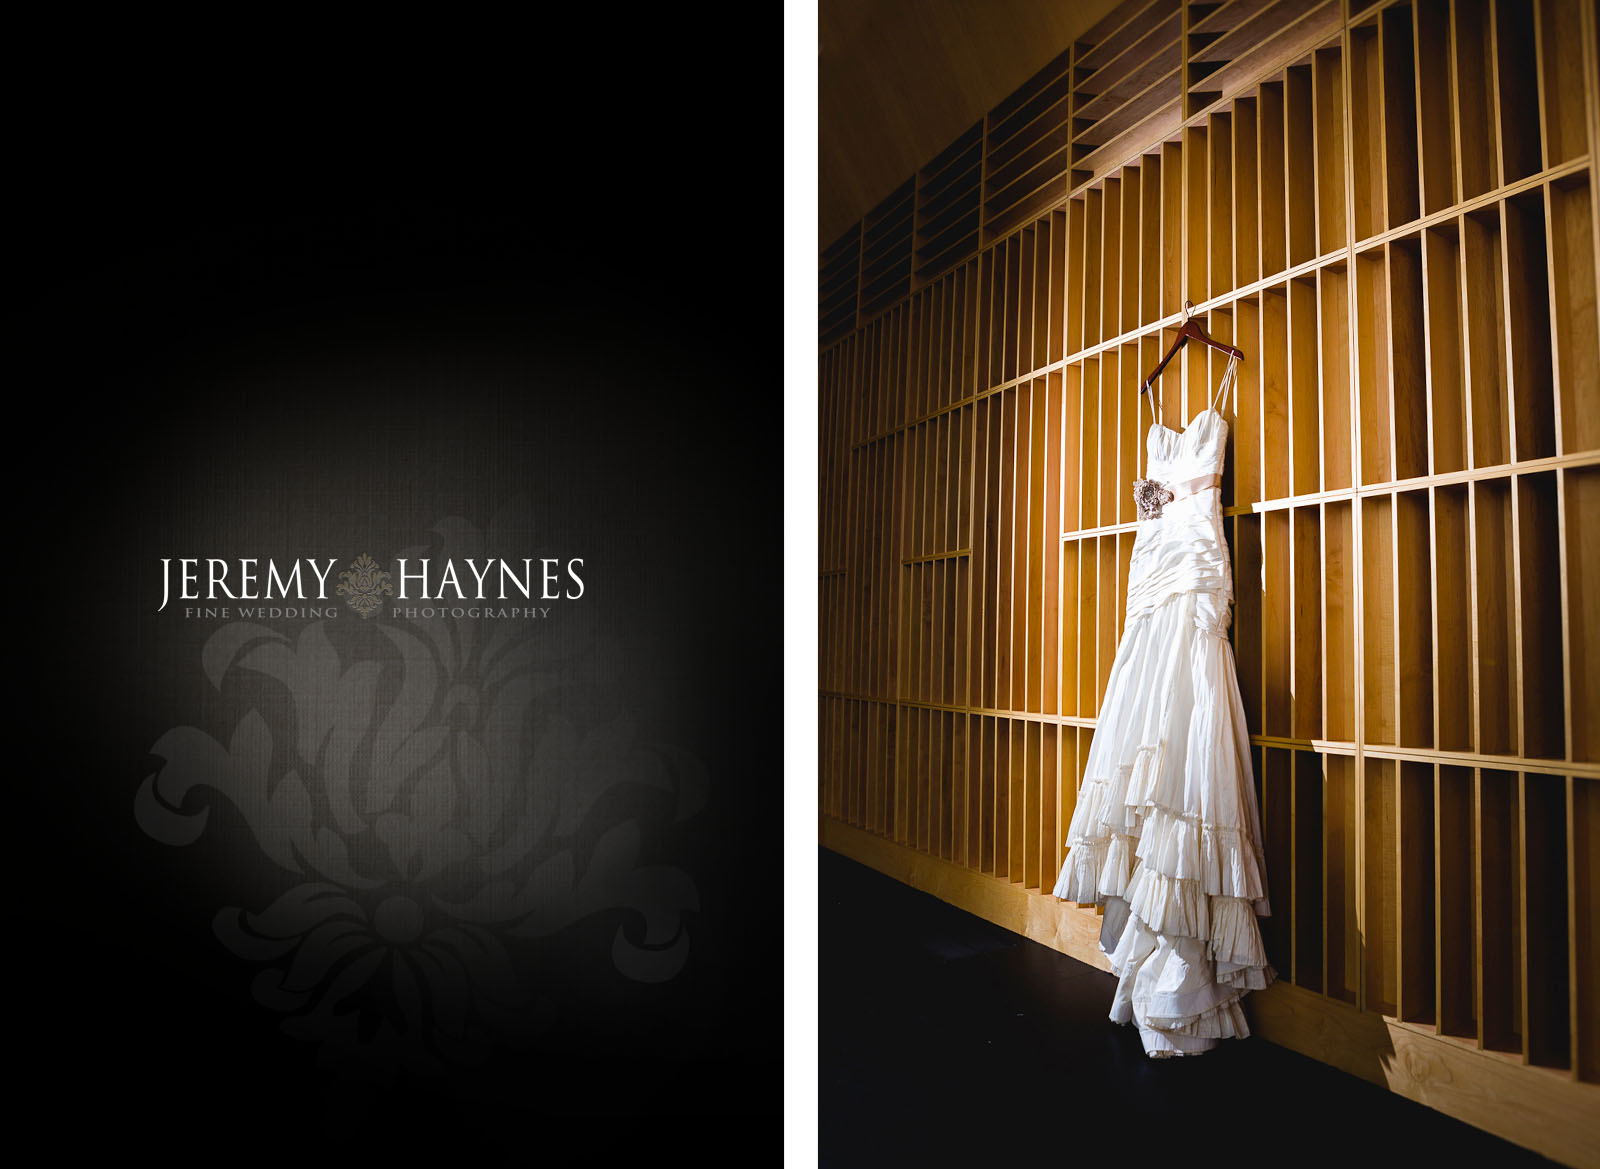 columbus-the-commons-bridal-wedding-dress-jeremy-haynes-photography-indianapolis.jpg